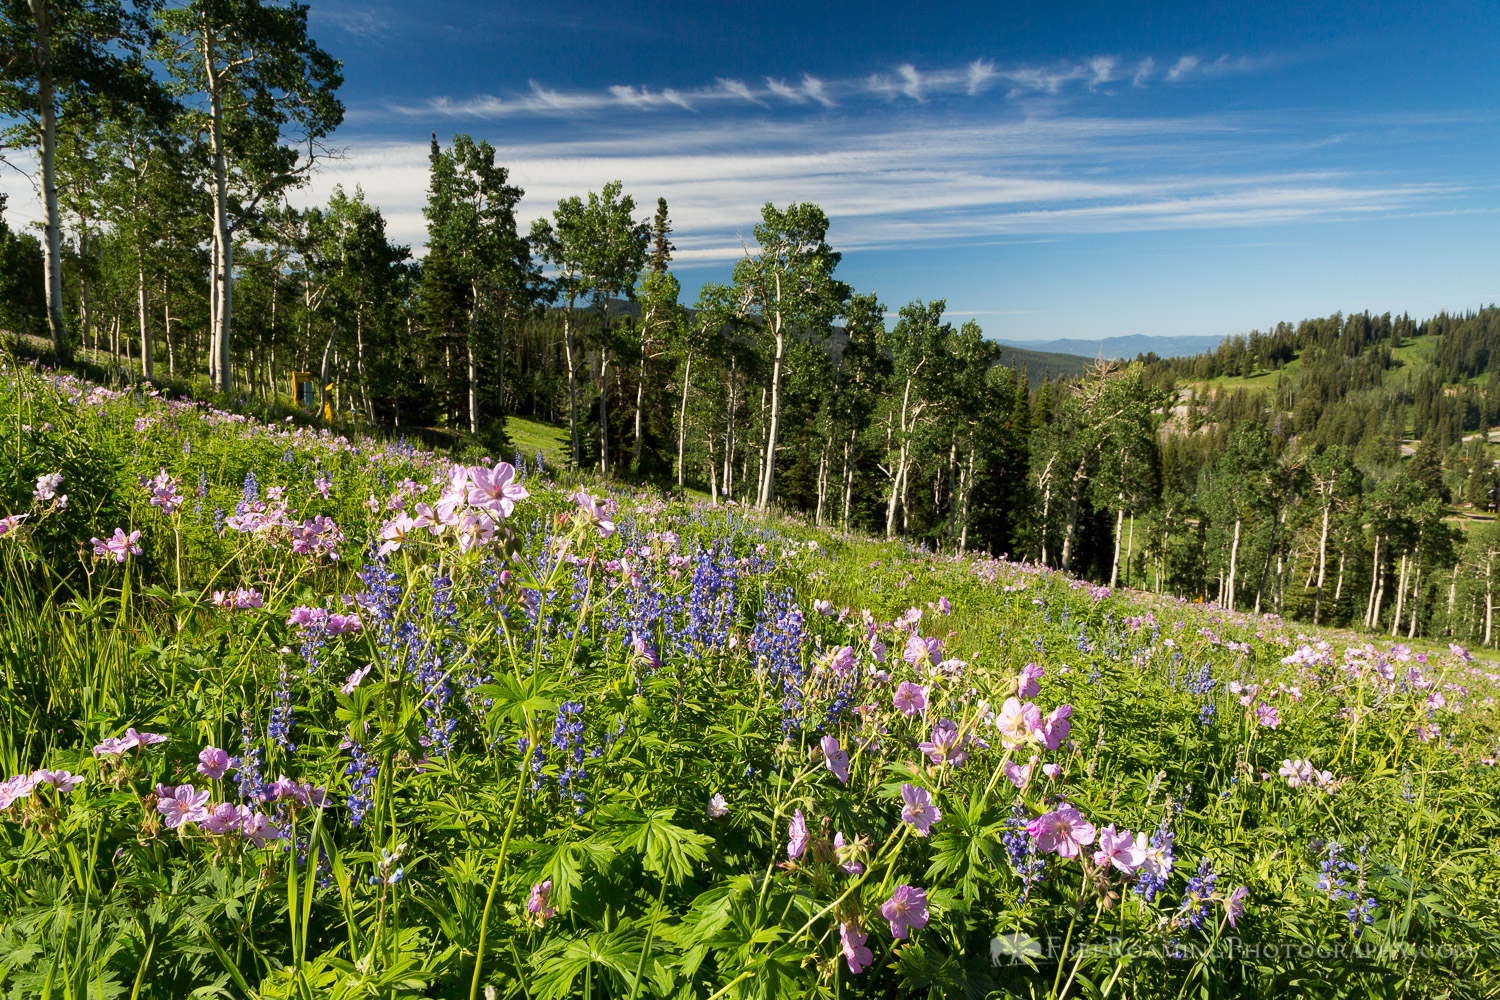 Wildflowers in Aspen Grove